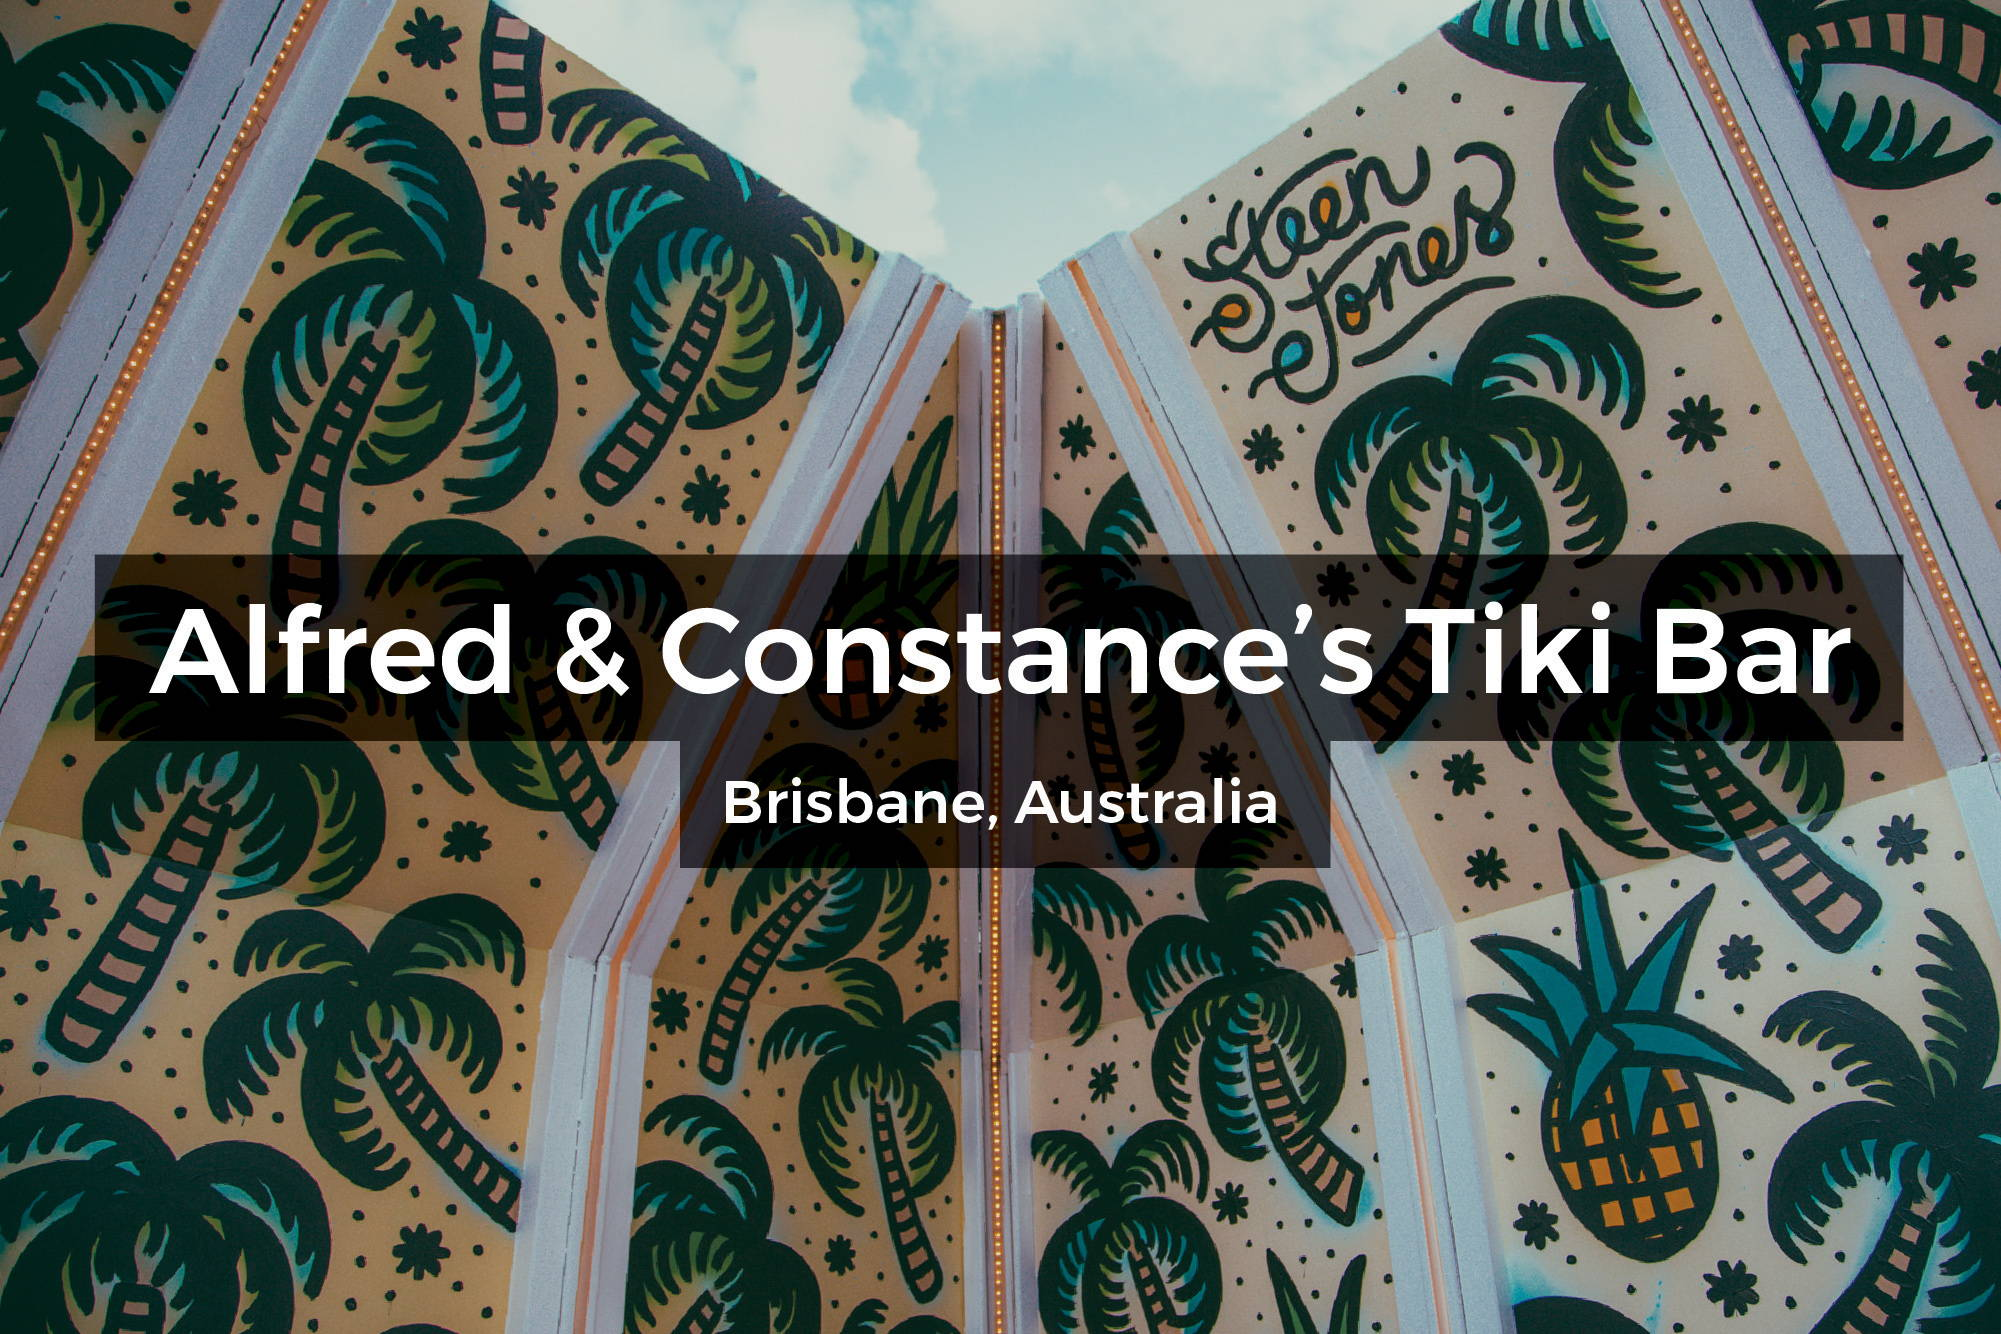 Mural at Alfred & Constance in the Tiki Bar in Brisbane, Australia by Steen Jones